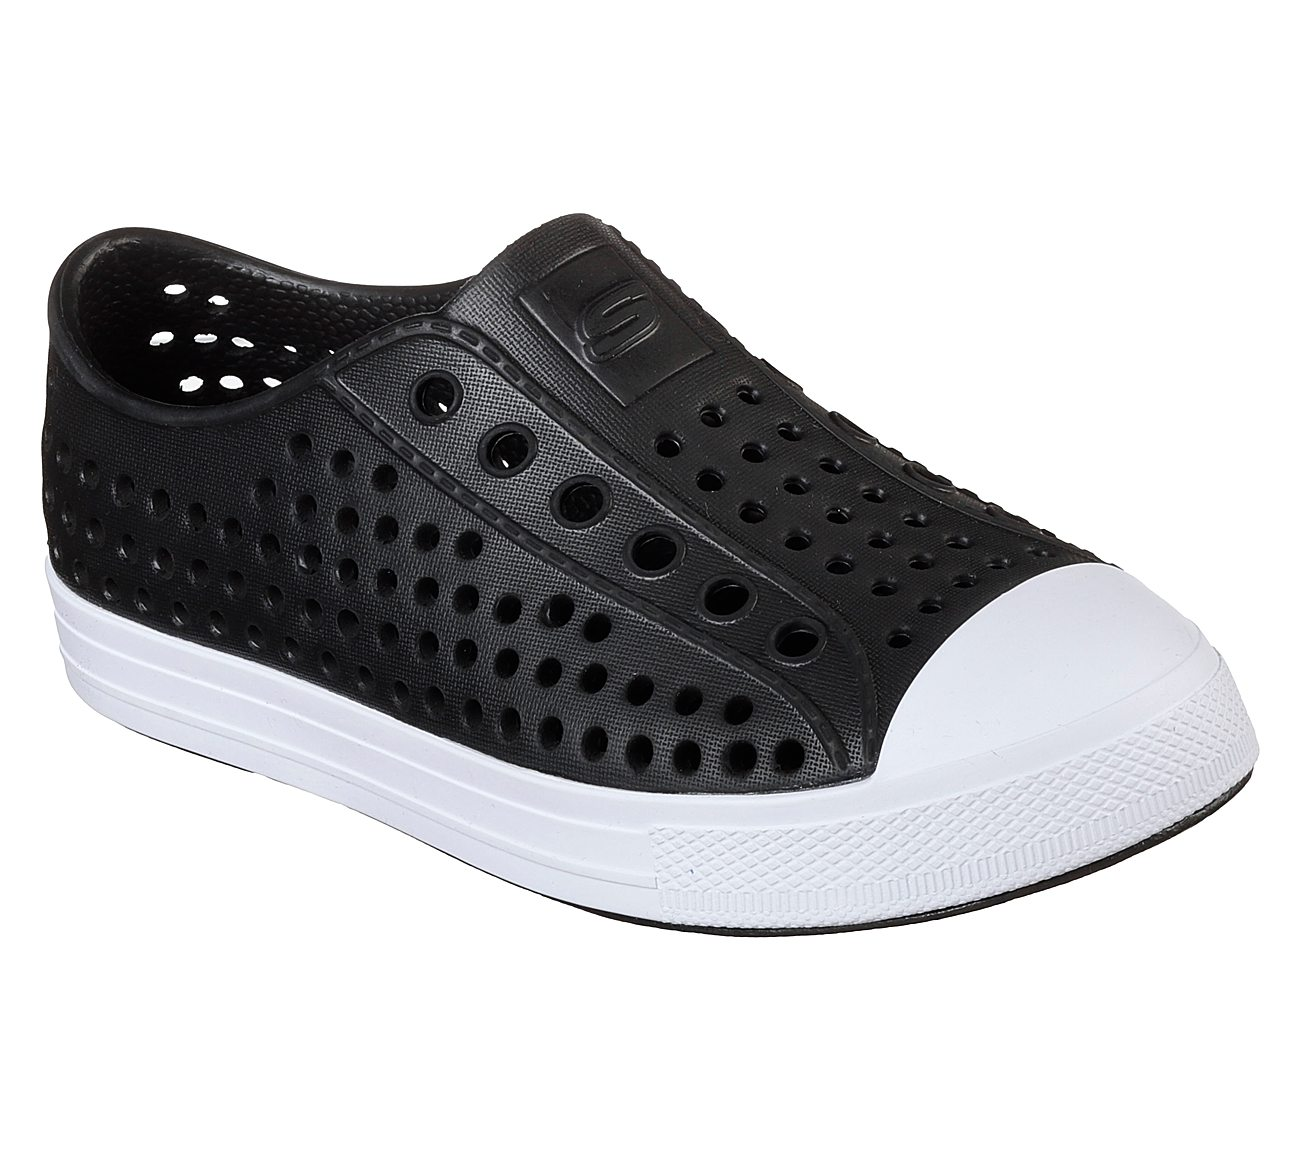 203bacde056f Buy SKECHERS Guzman 2.0 - Helioblast USA Casuals Shoes only  24.00